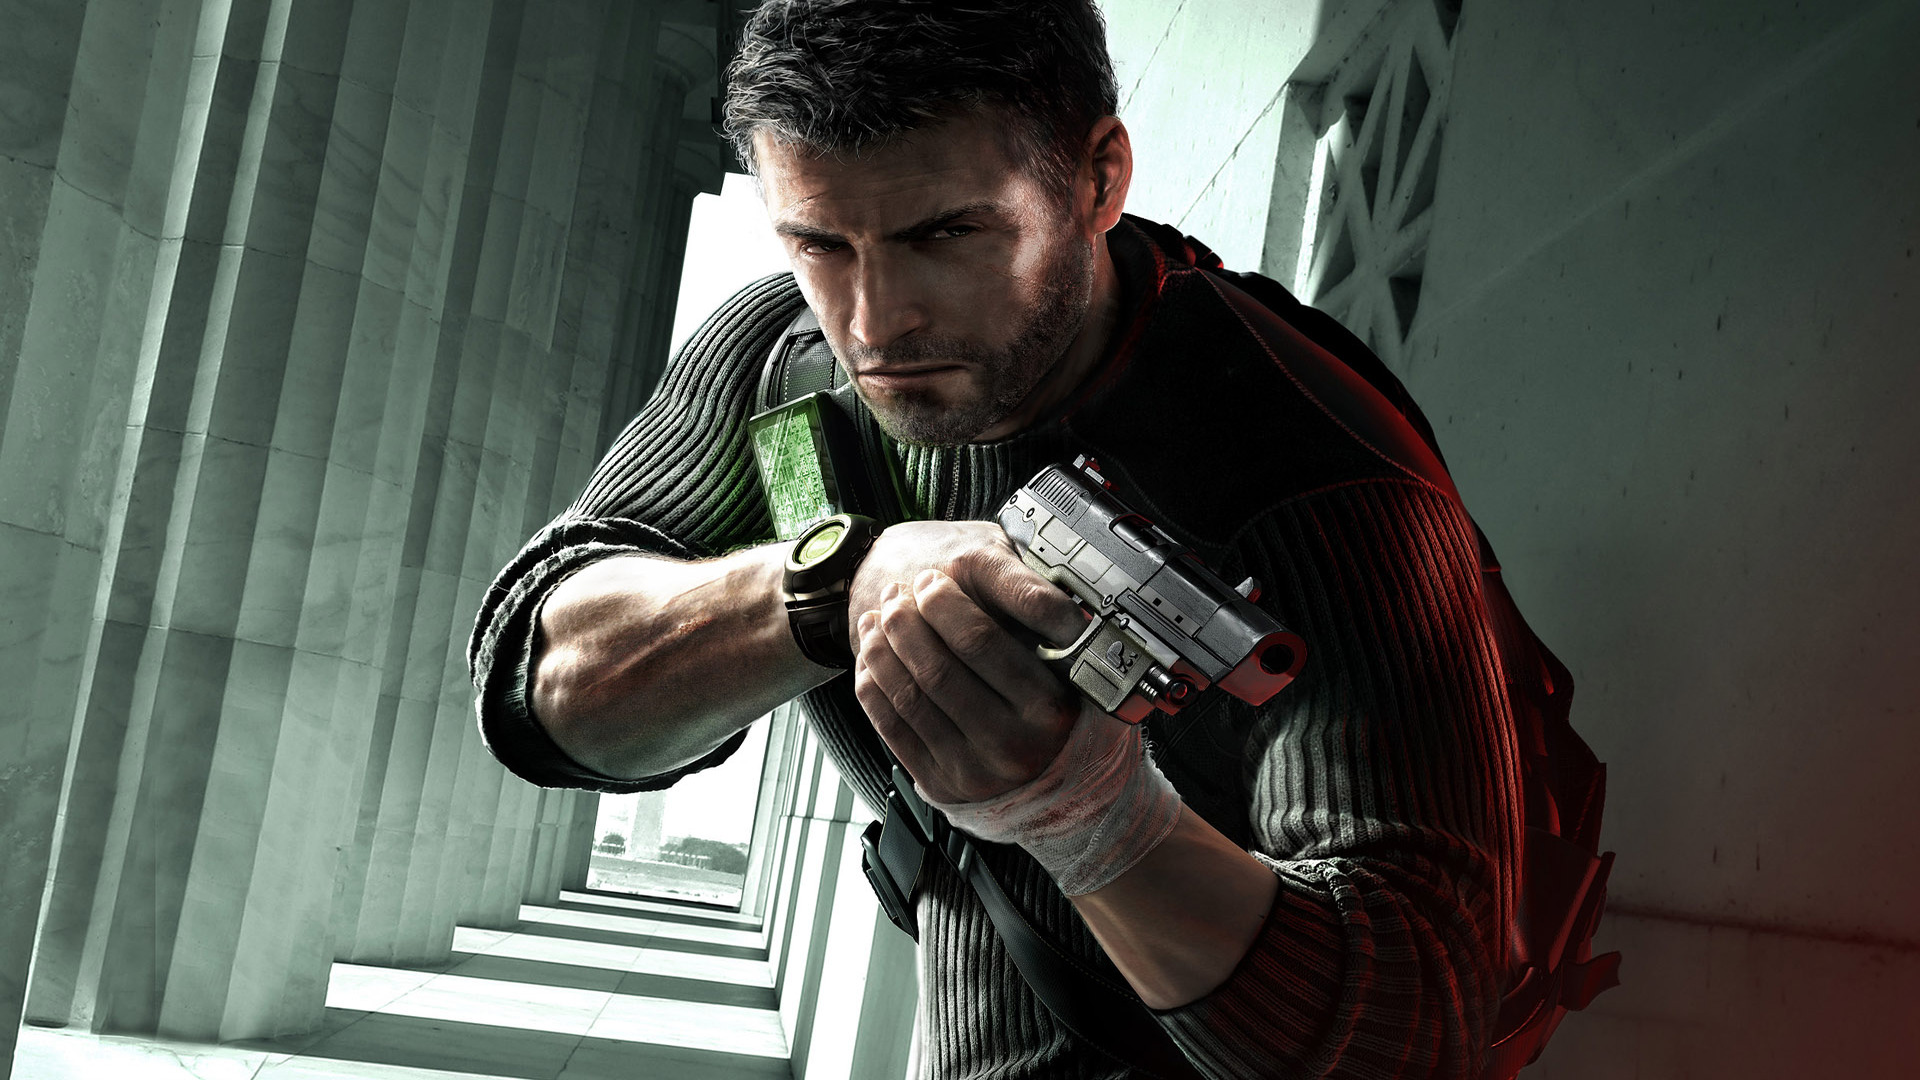 Splinter Cell: Conviction - Sam Fisher Wallpapers